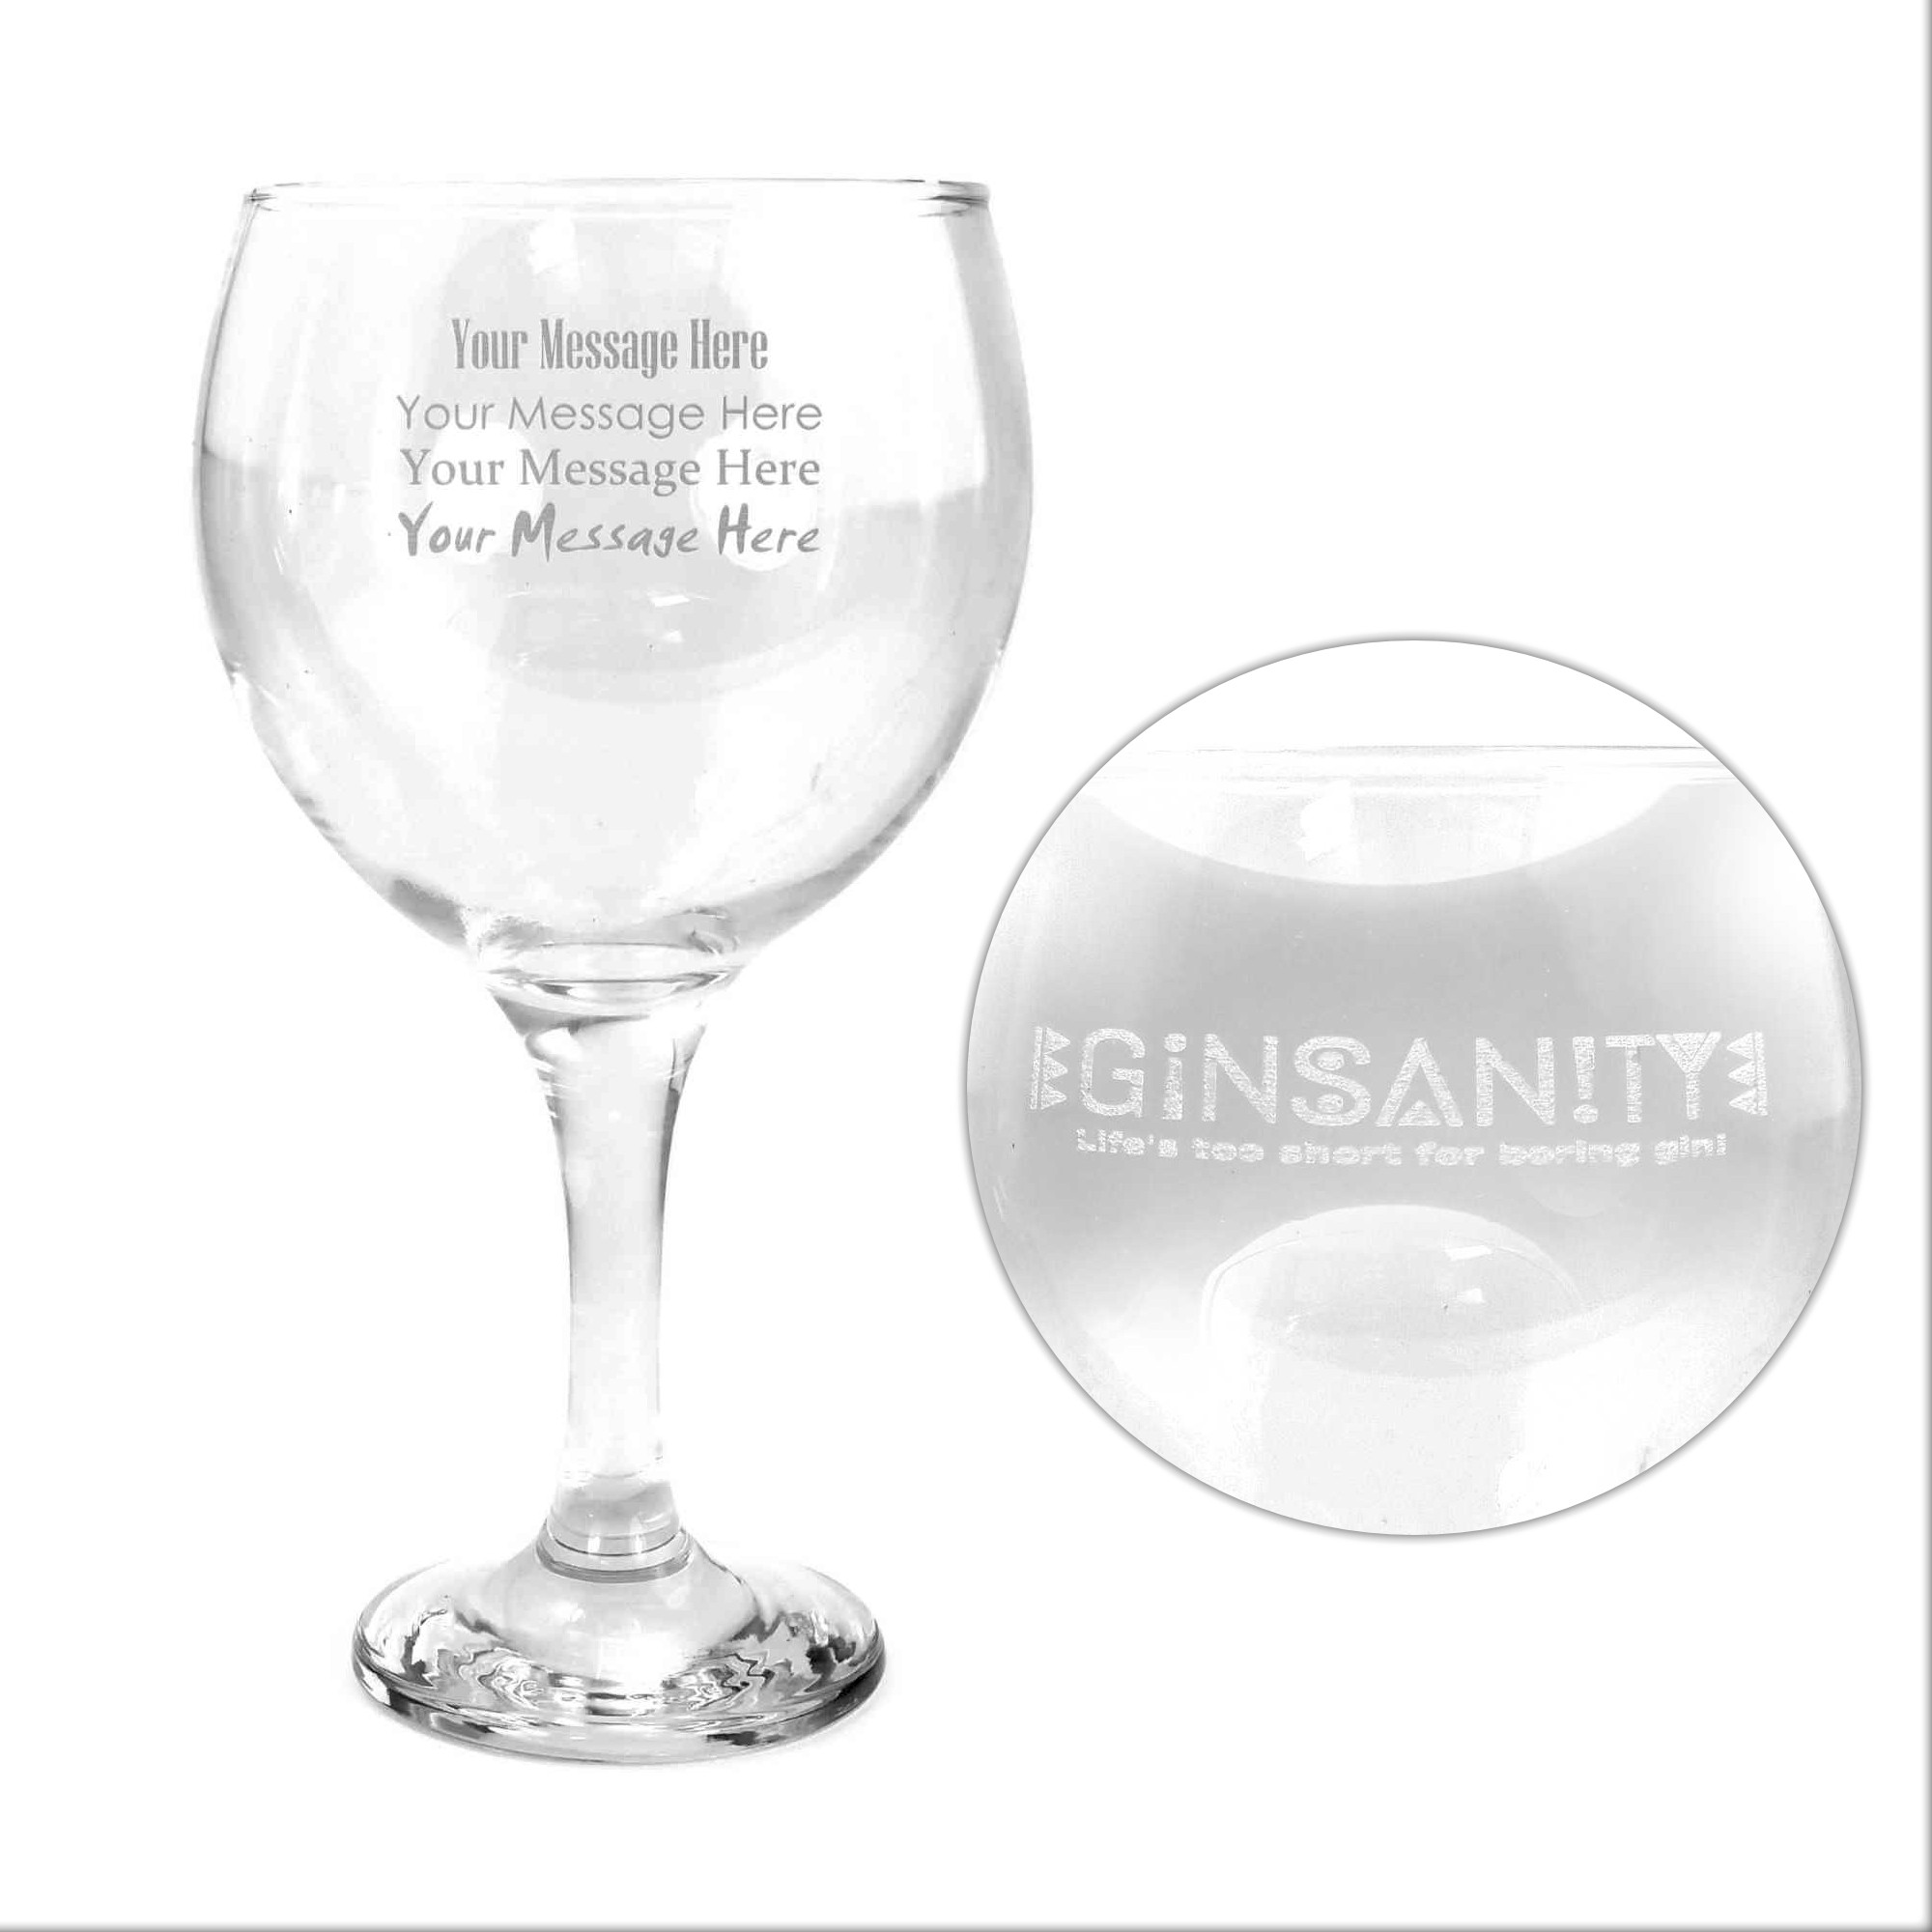 The Ginsanity Copa Gin Glass (optional Engraving)  Ginsanity. Desk Sale. Keurig K-cup Countertop Storage Drawer. Rug Under Dining Table. Hanging Drawer. Cinderella Table Skirt. Desks Colorado Springs. Oak Pedestal Table. Patio Table With Umbrella